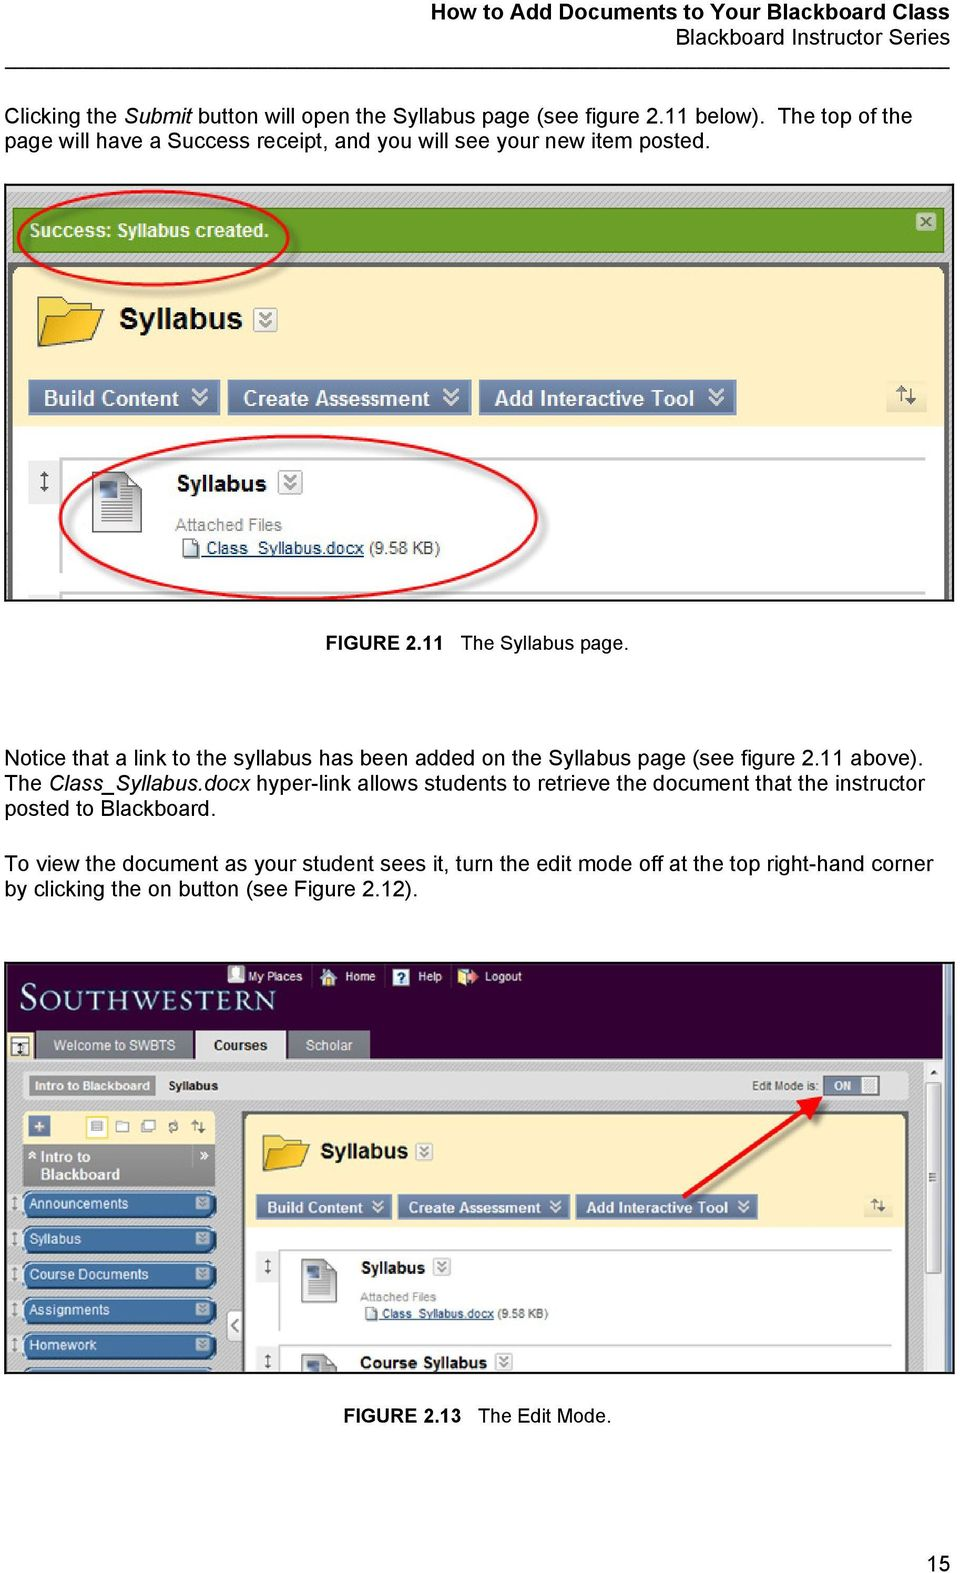 Notice that a link to the syllabus has been added on the Syllabus page (see figure 2.11 above). The Class_Syllabus.